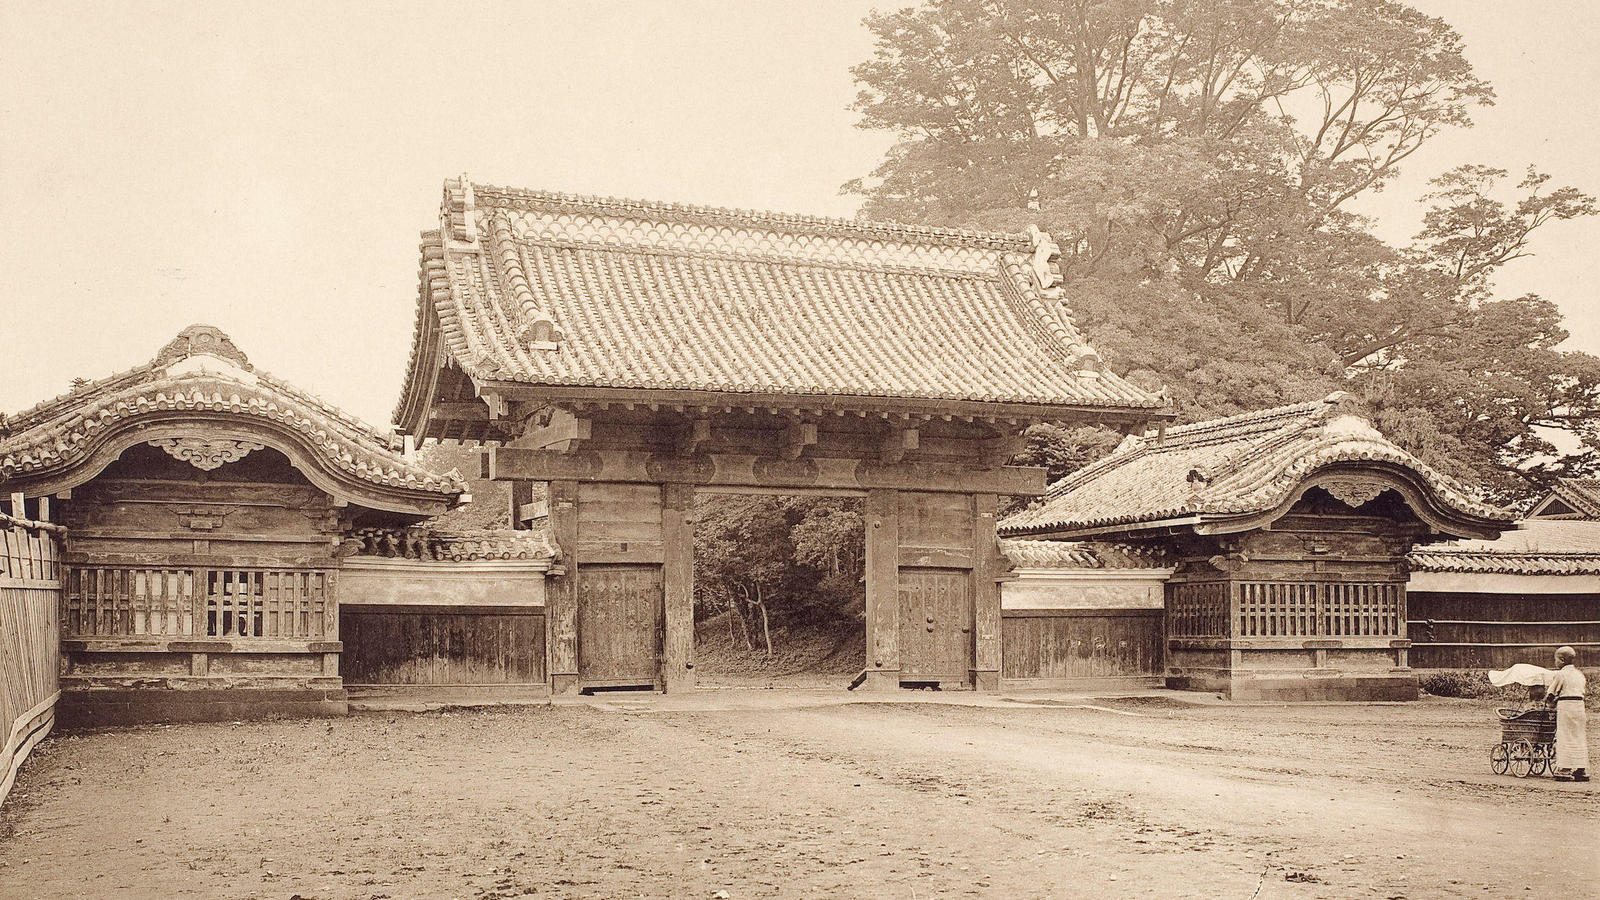 The University of Tokyo as an Academic Asset